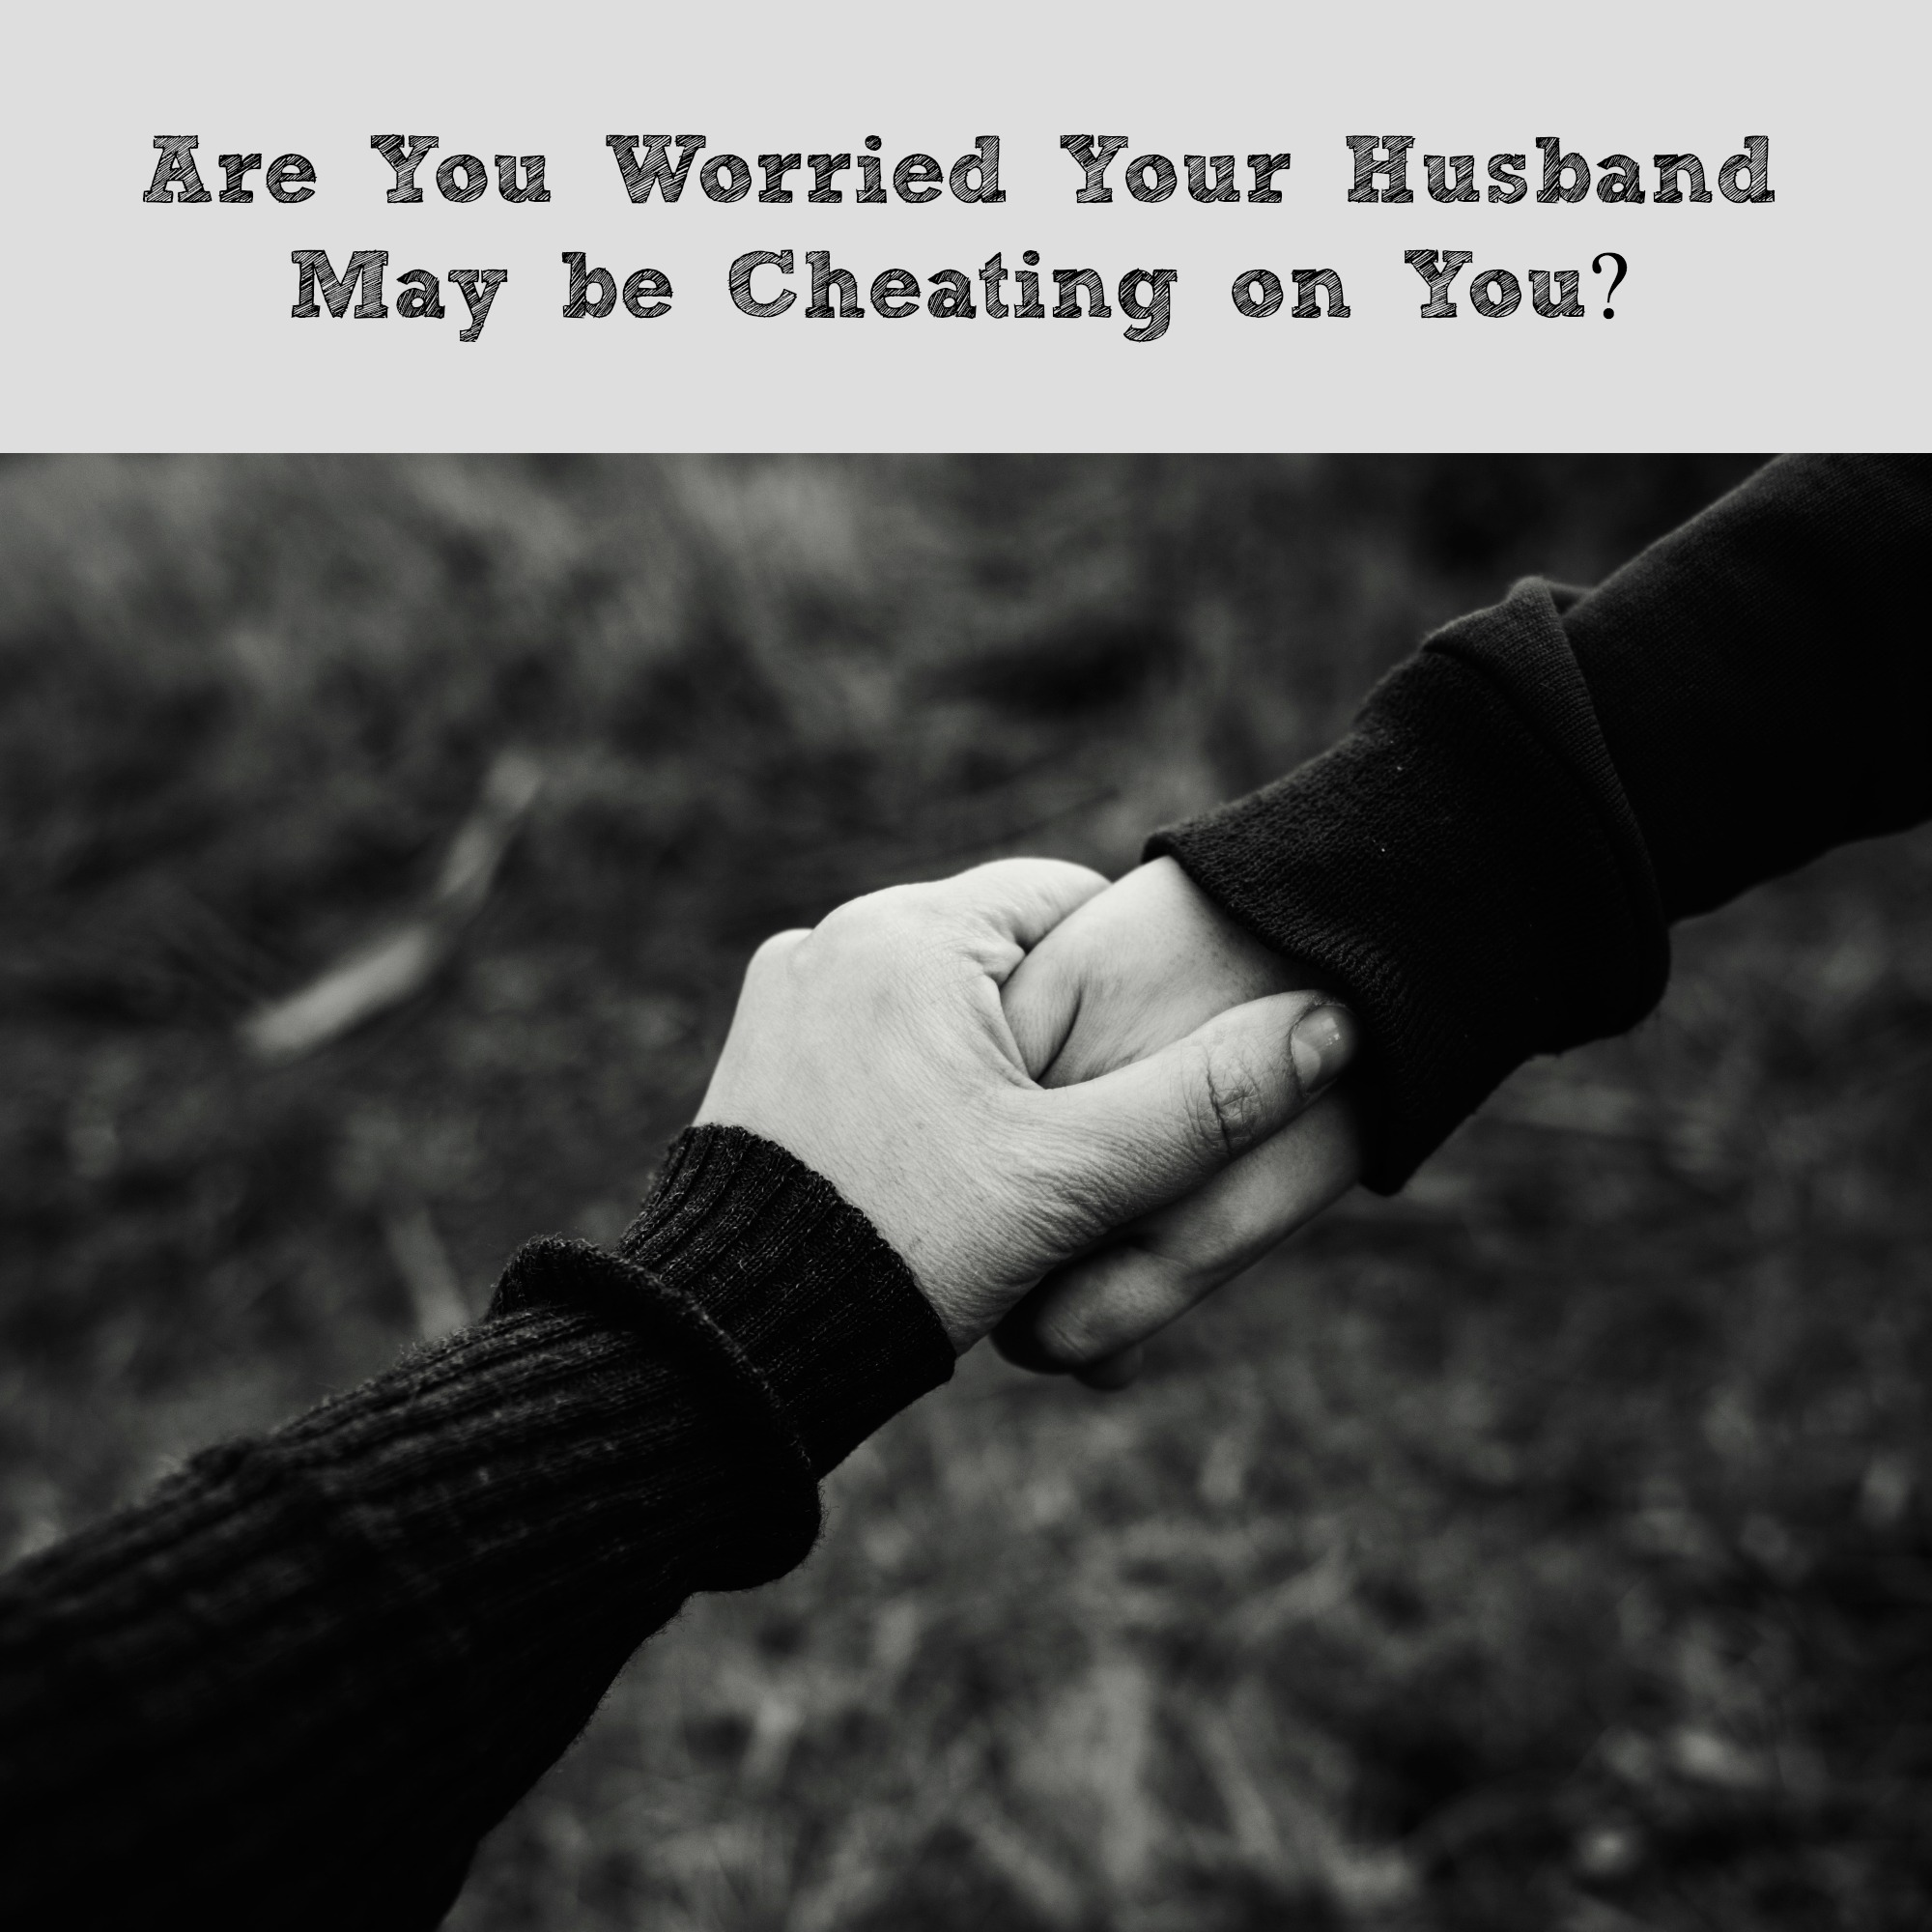 Are You Worried Your Husband May be Cheating on You?